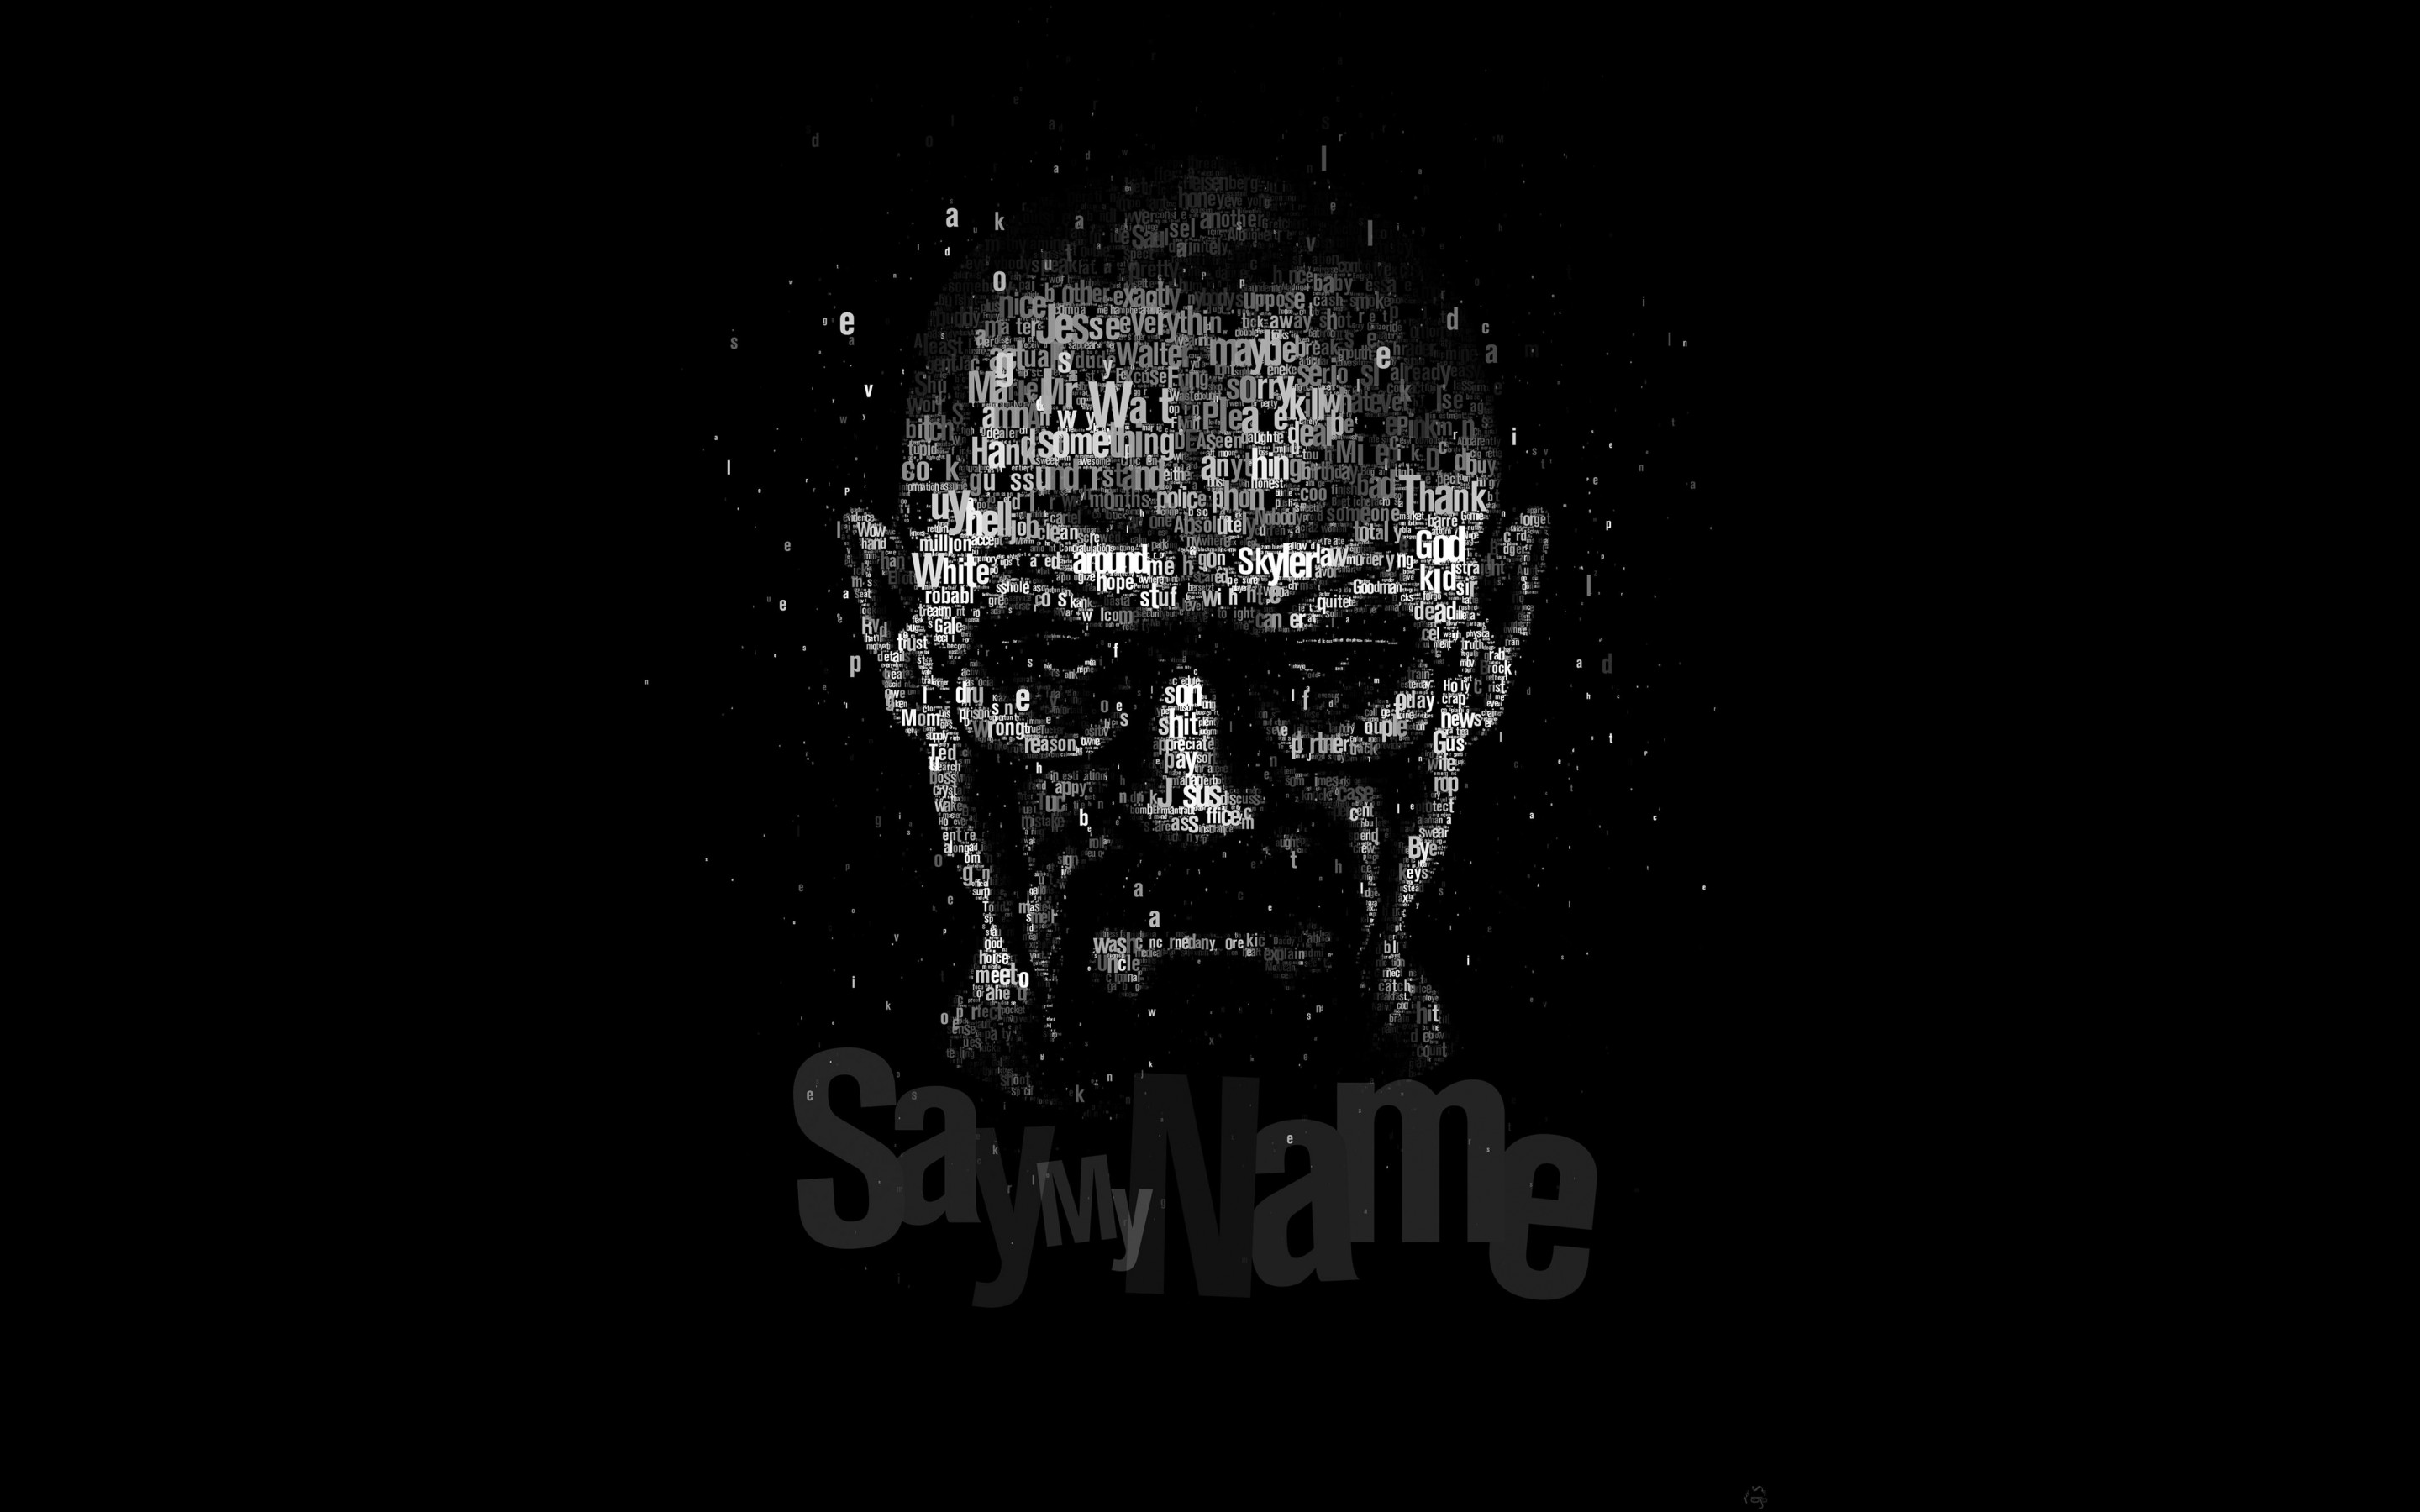 Say My Name - Typography Art Wallpaper for Desktop 2880x1800